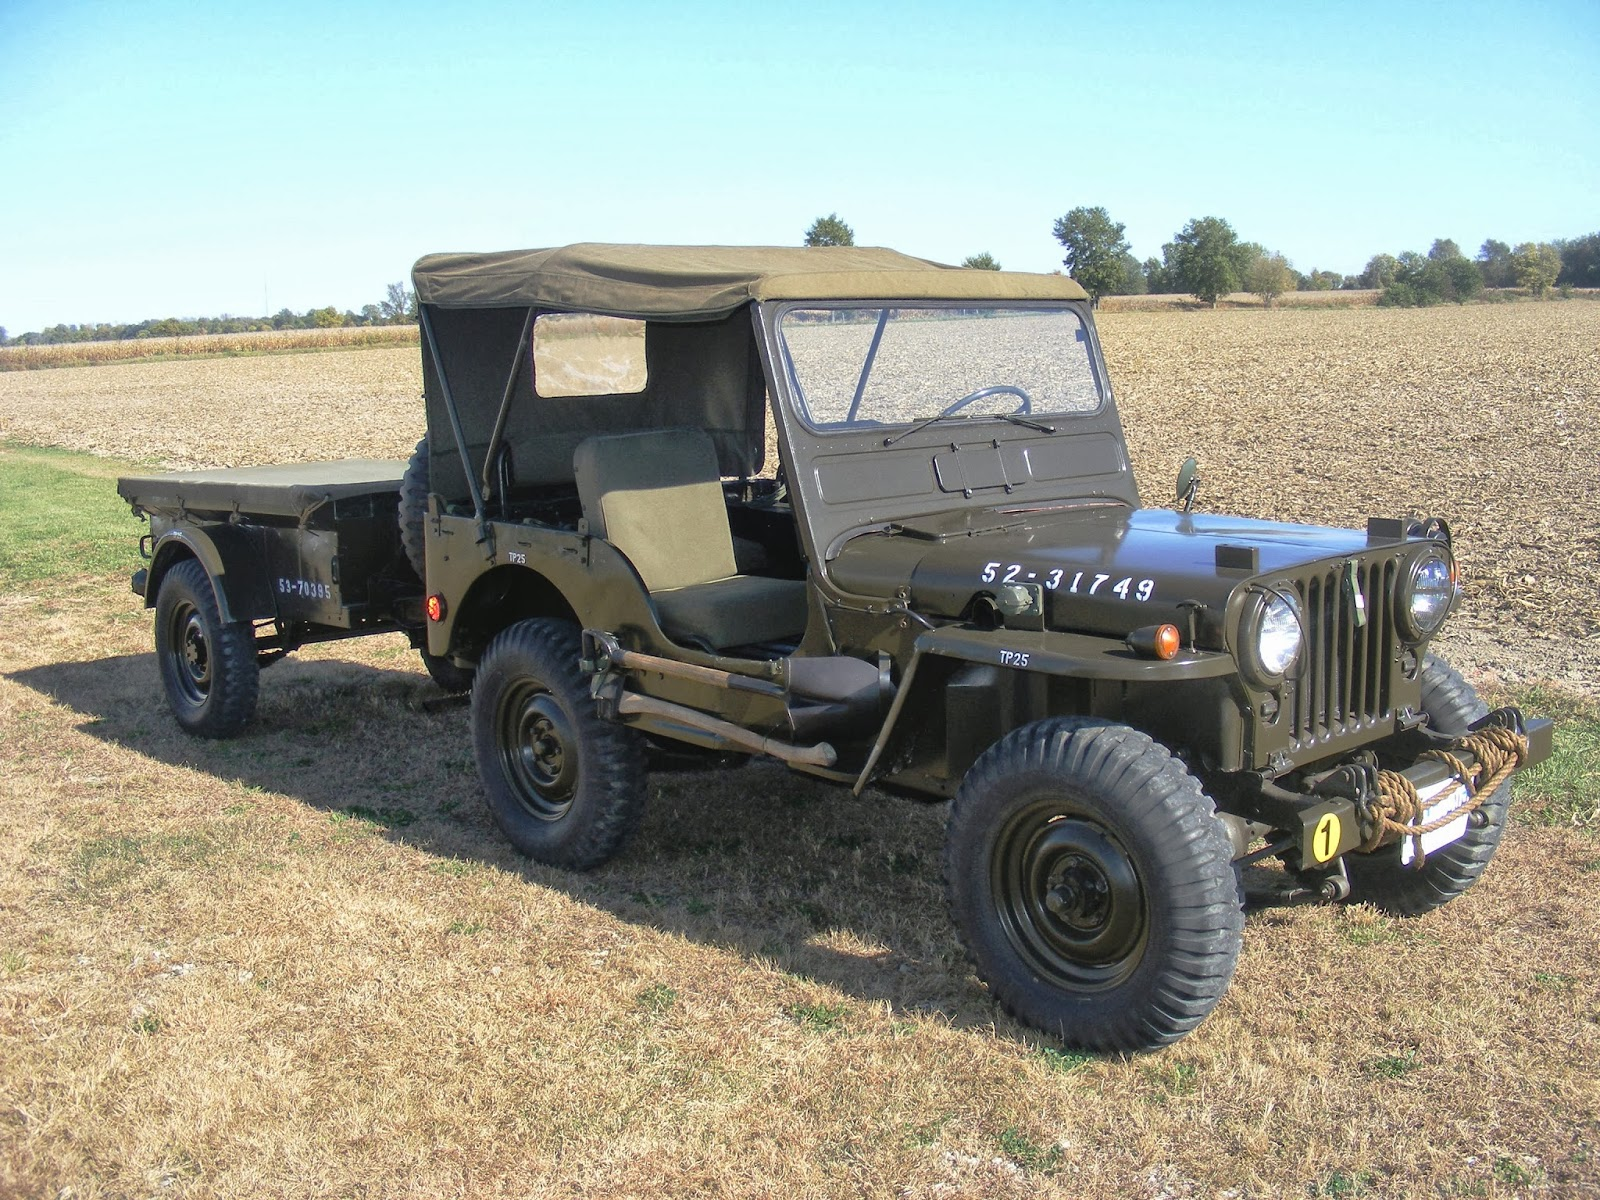 M38 Jeep 28 Images Armorama Another Project This Time 1941 To 1952 Willys Classic Wheels And Vintage Wings Sold Excellent